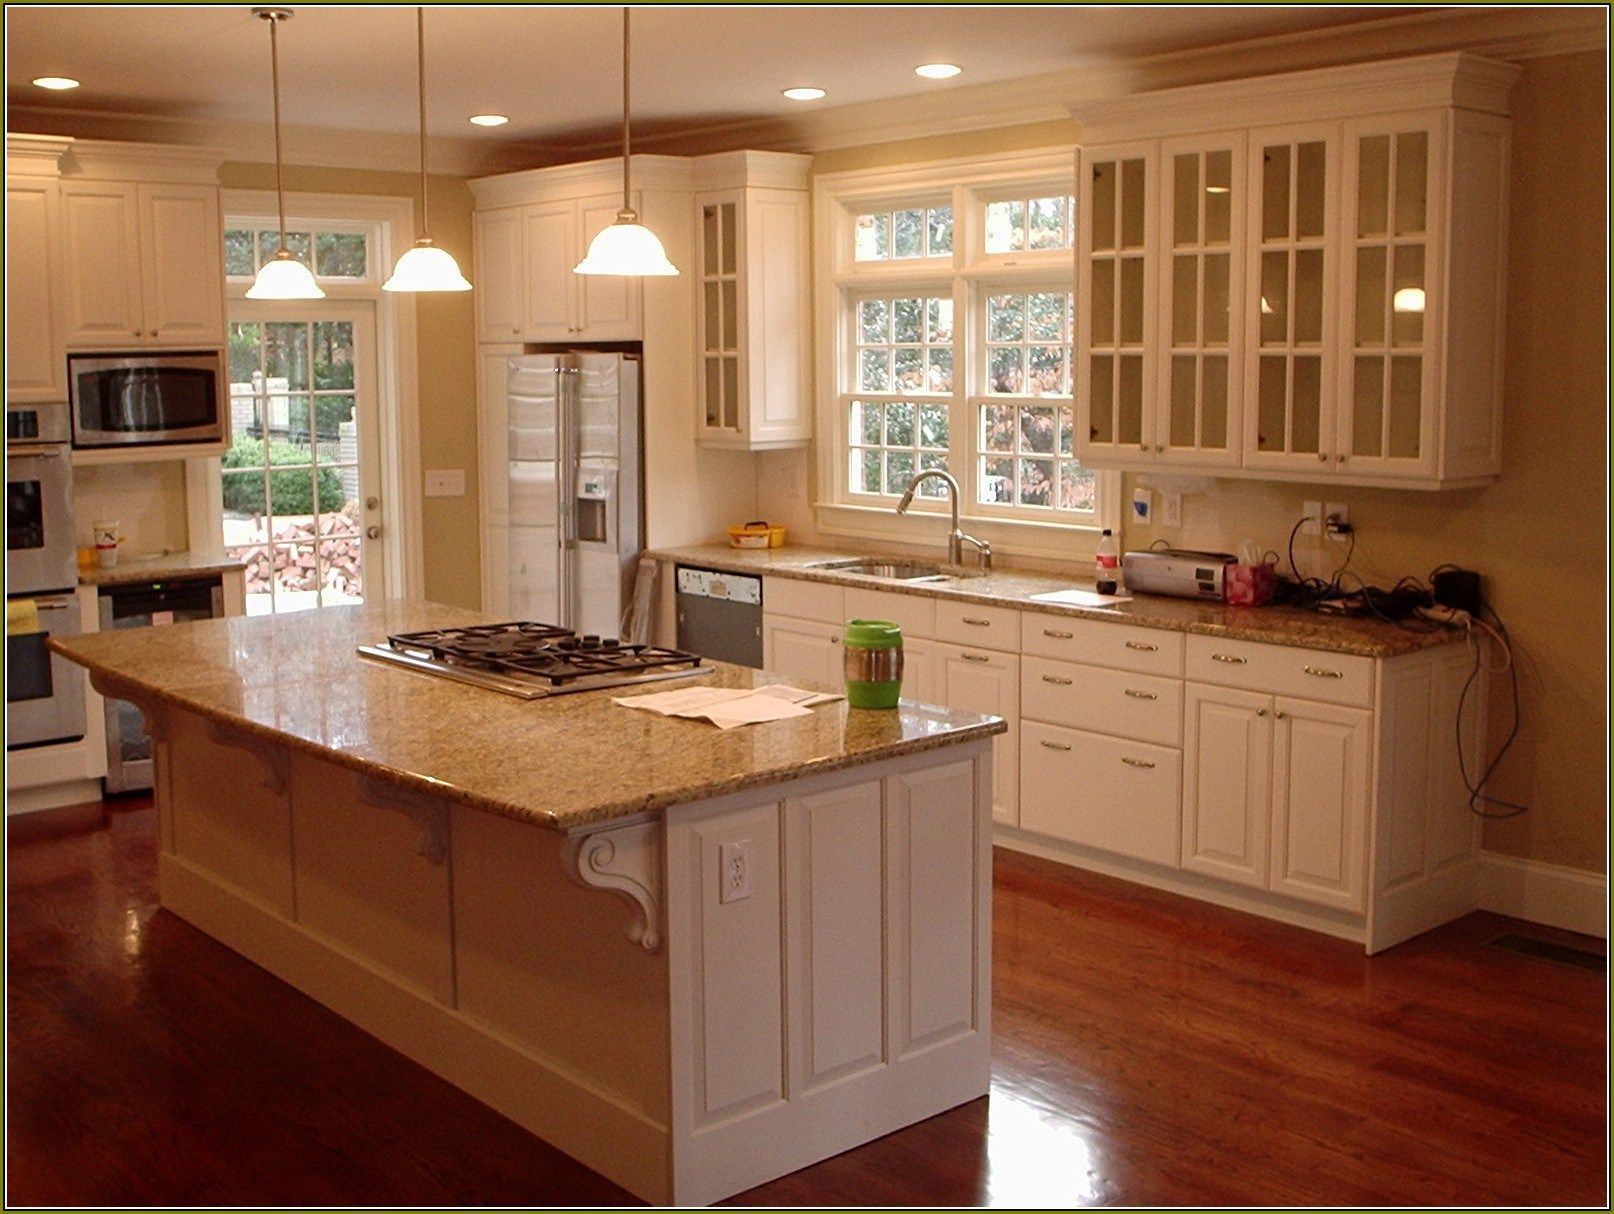 Home Depot Kitchen Cabinets Home Design Ideas Refacing Refinishing  Resurfacing Kitchen Cabinets Home Depot